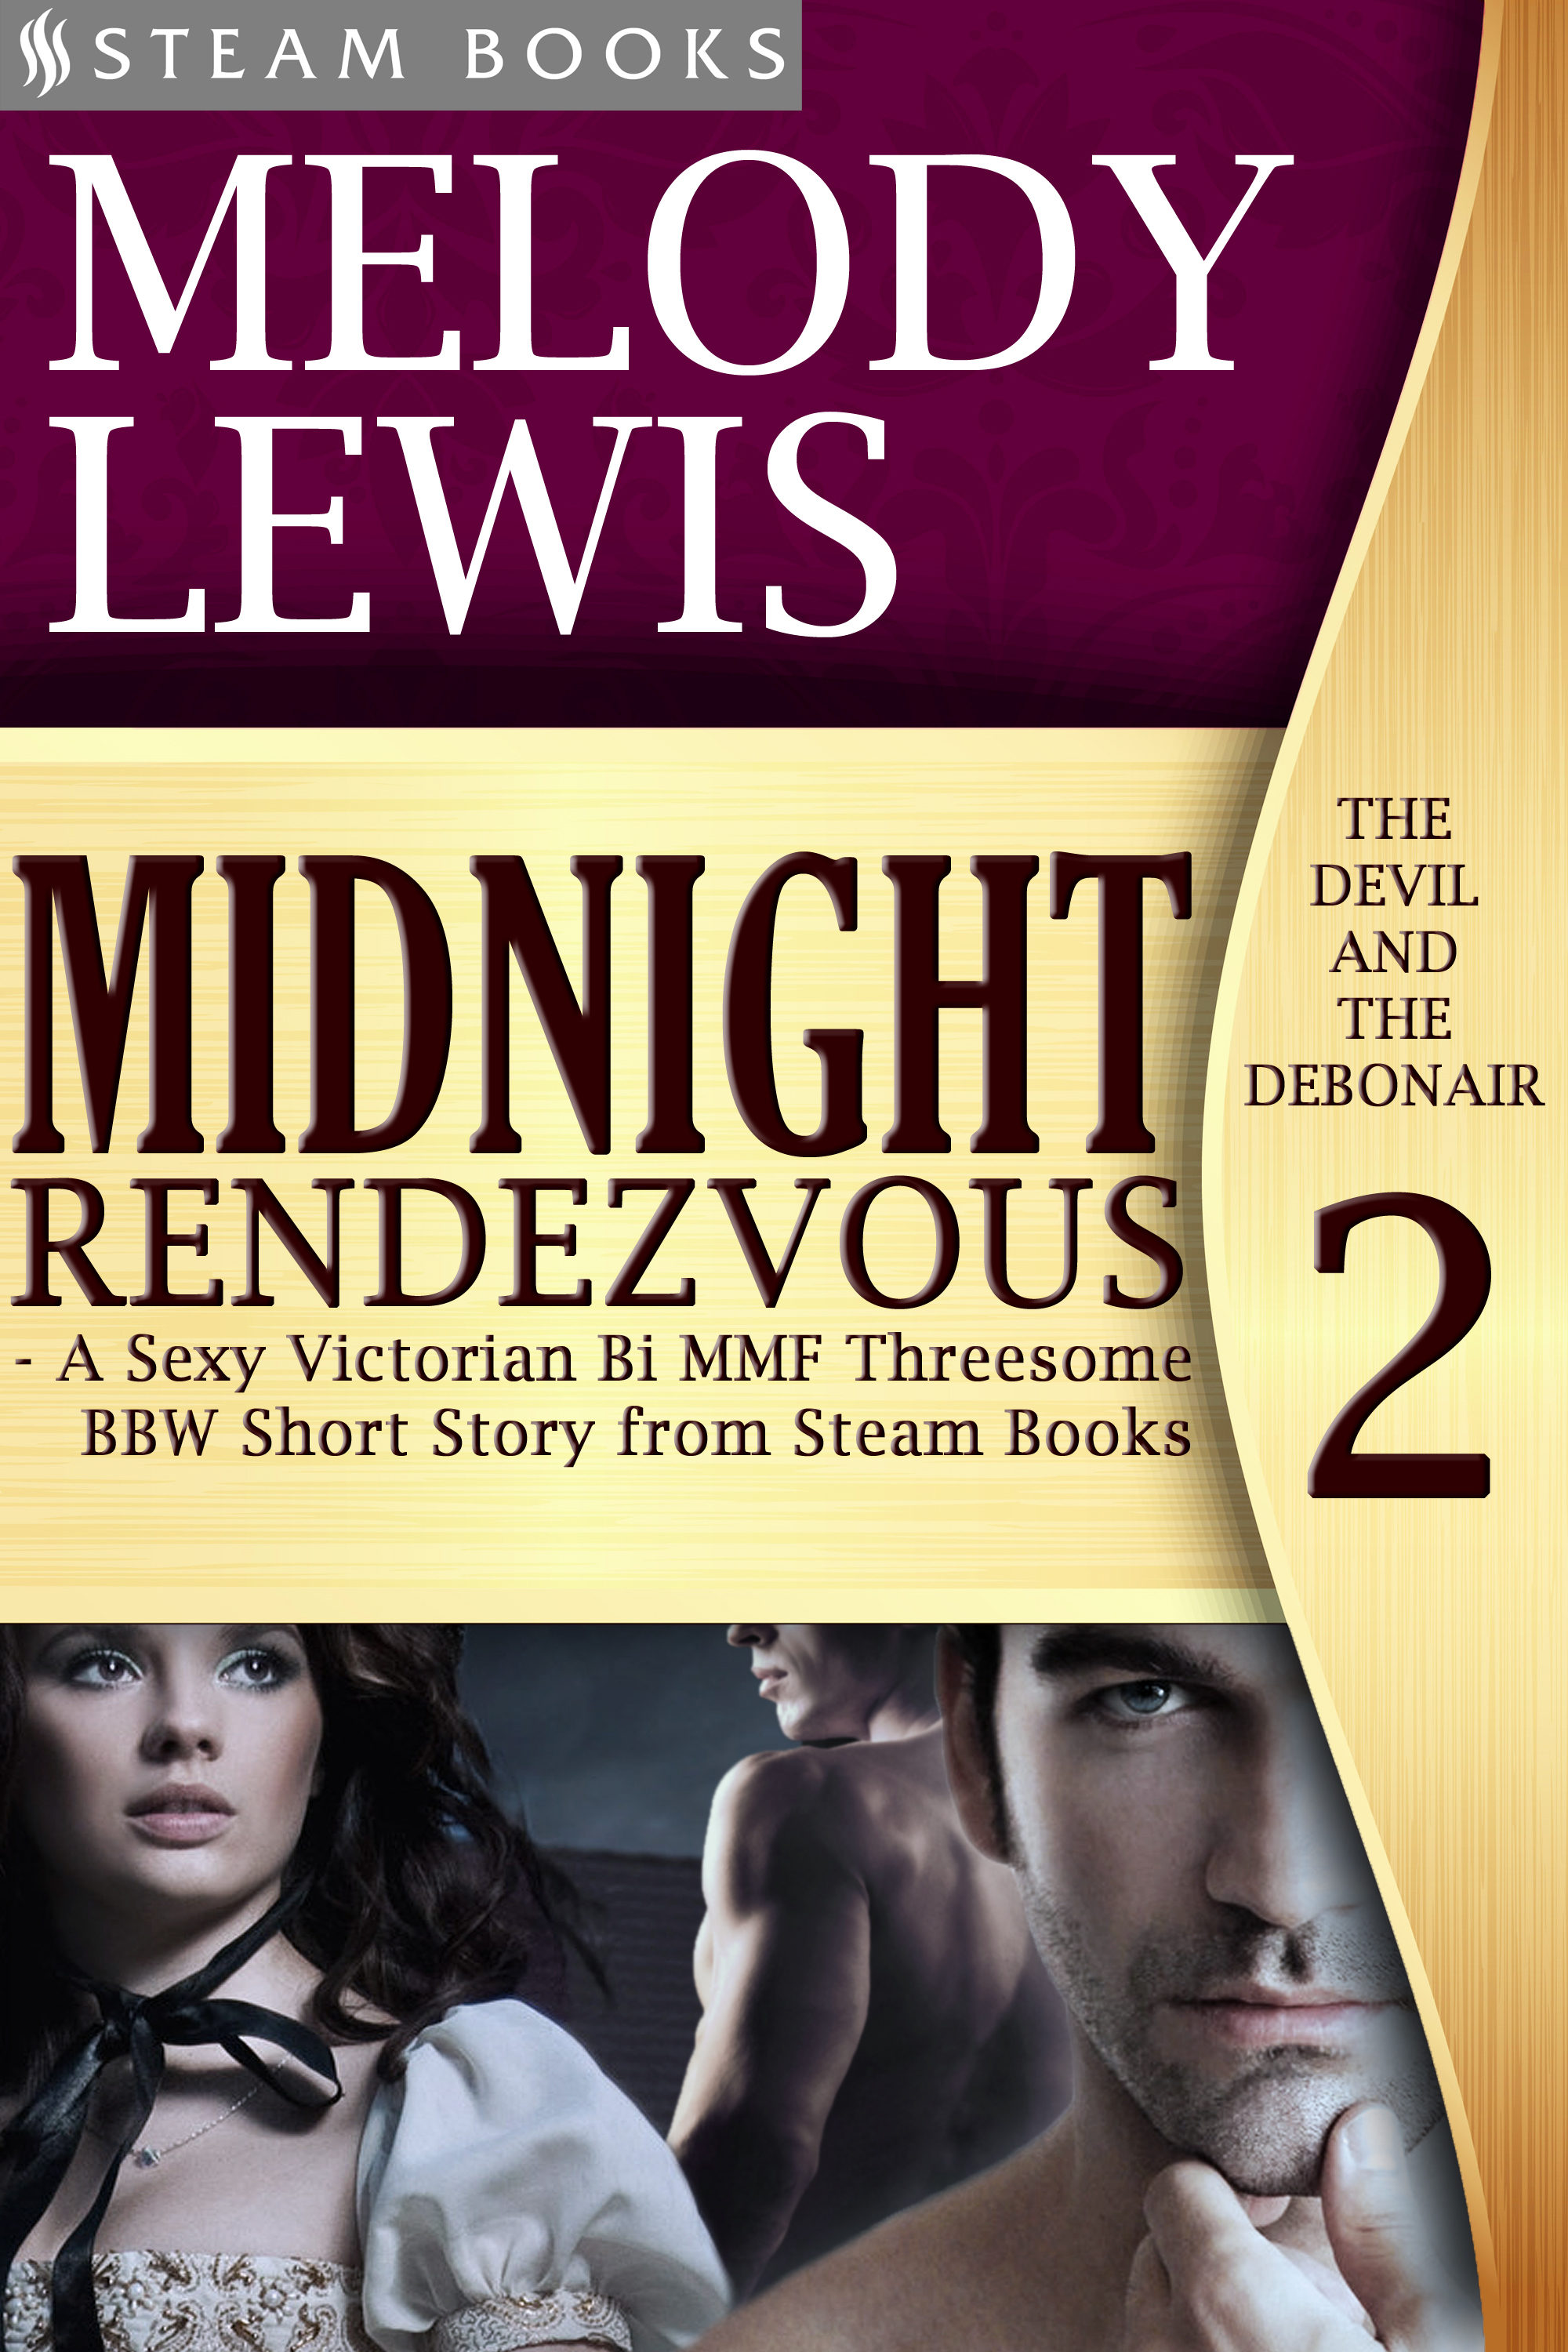 midnight rendezvous - a sexy victorian bi mmf threesome bbw short